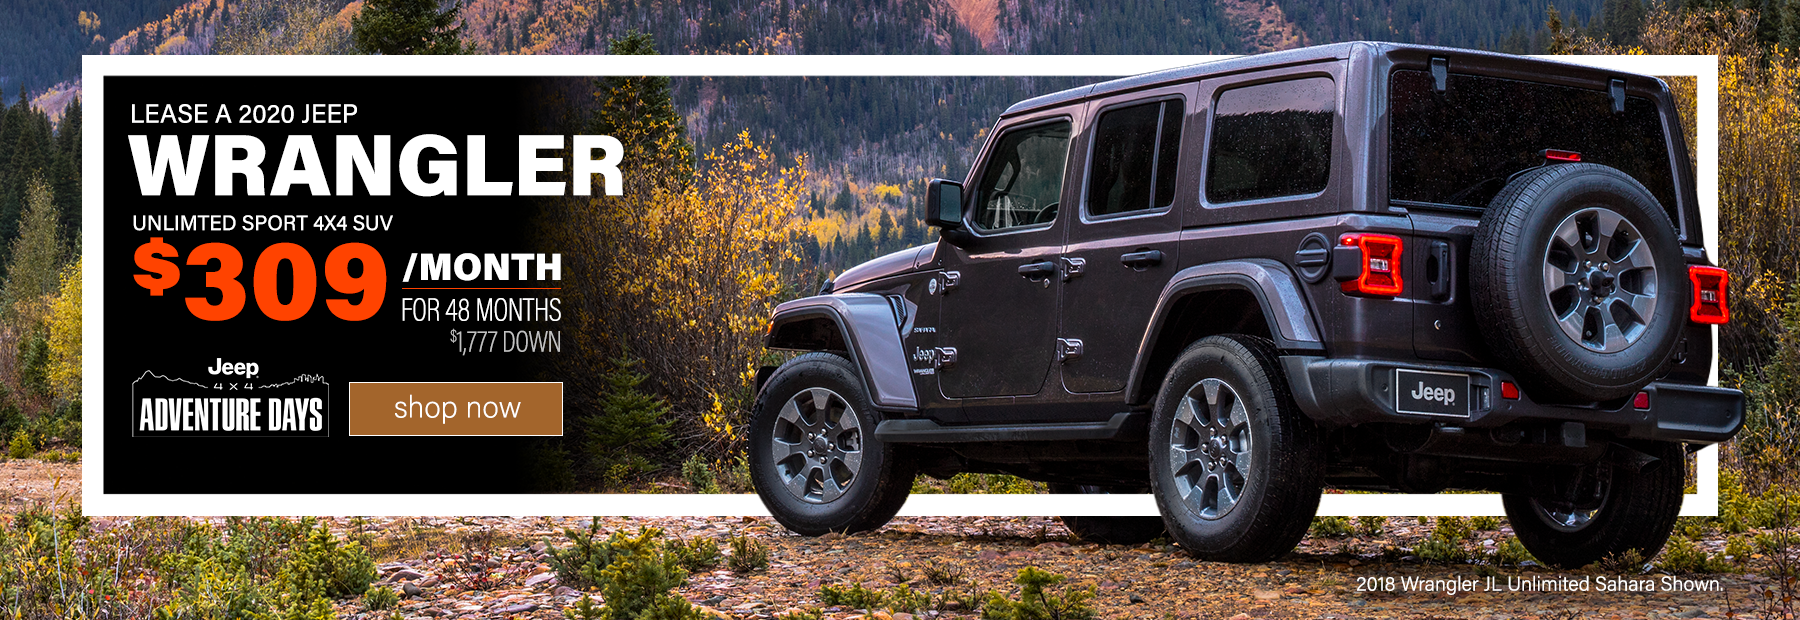 new-2020-jeep-wrangler-unlimited-lease-deal-dayton-ohio